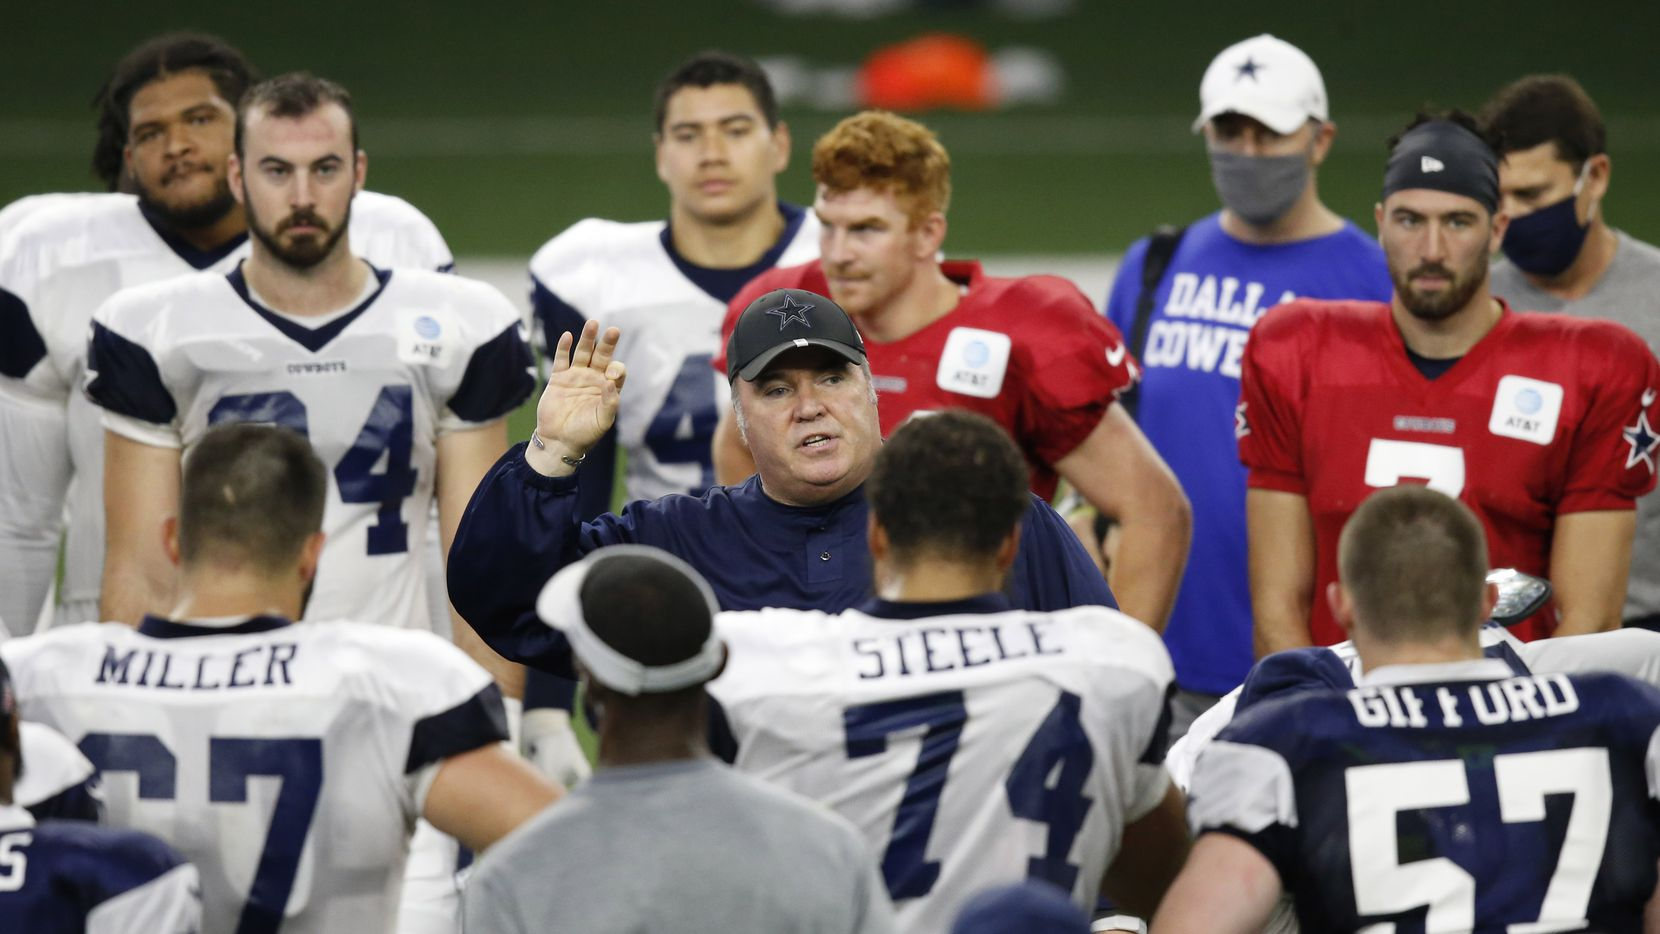 Cowboys head coach Mike McCarthy talks to the team after practice during training camp at The Star in Frisco on Monday, Aug. 17, 2020.